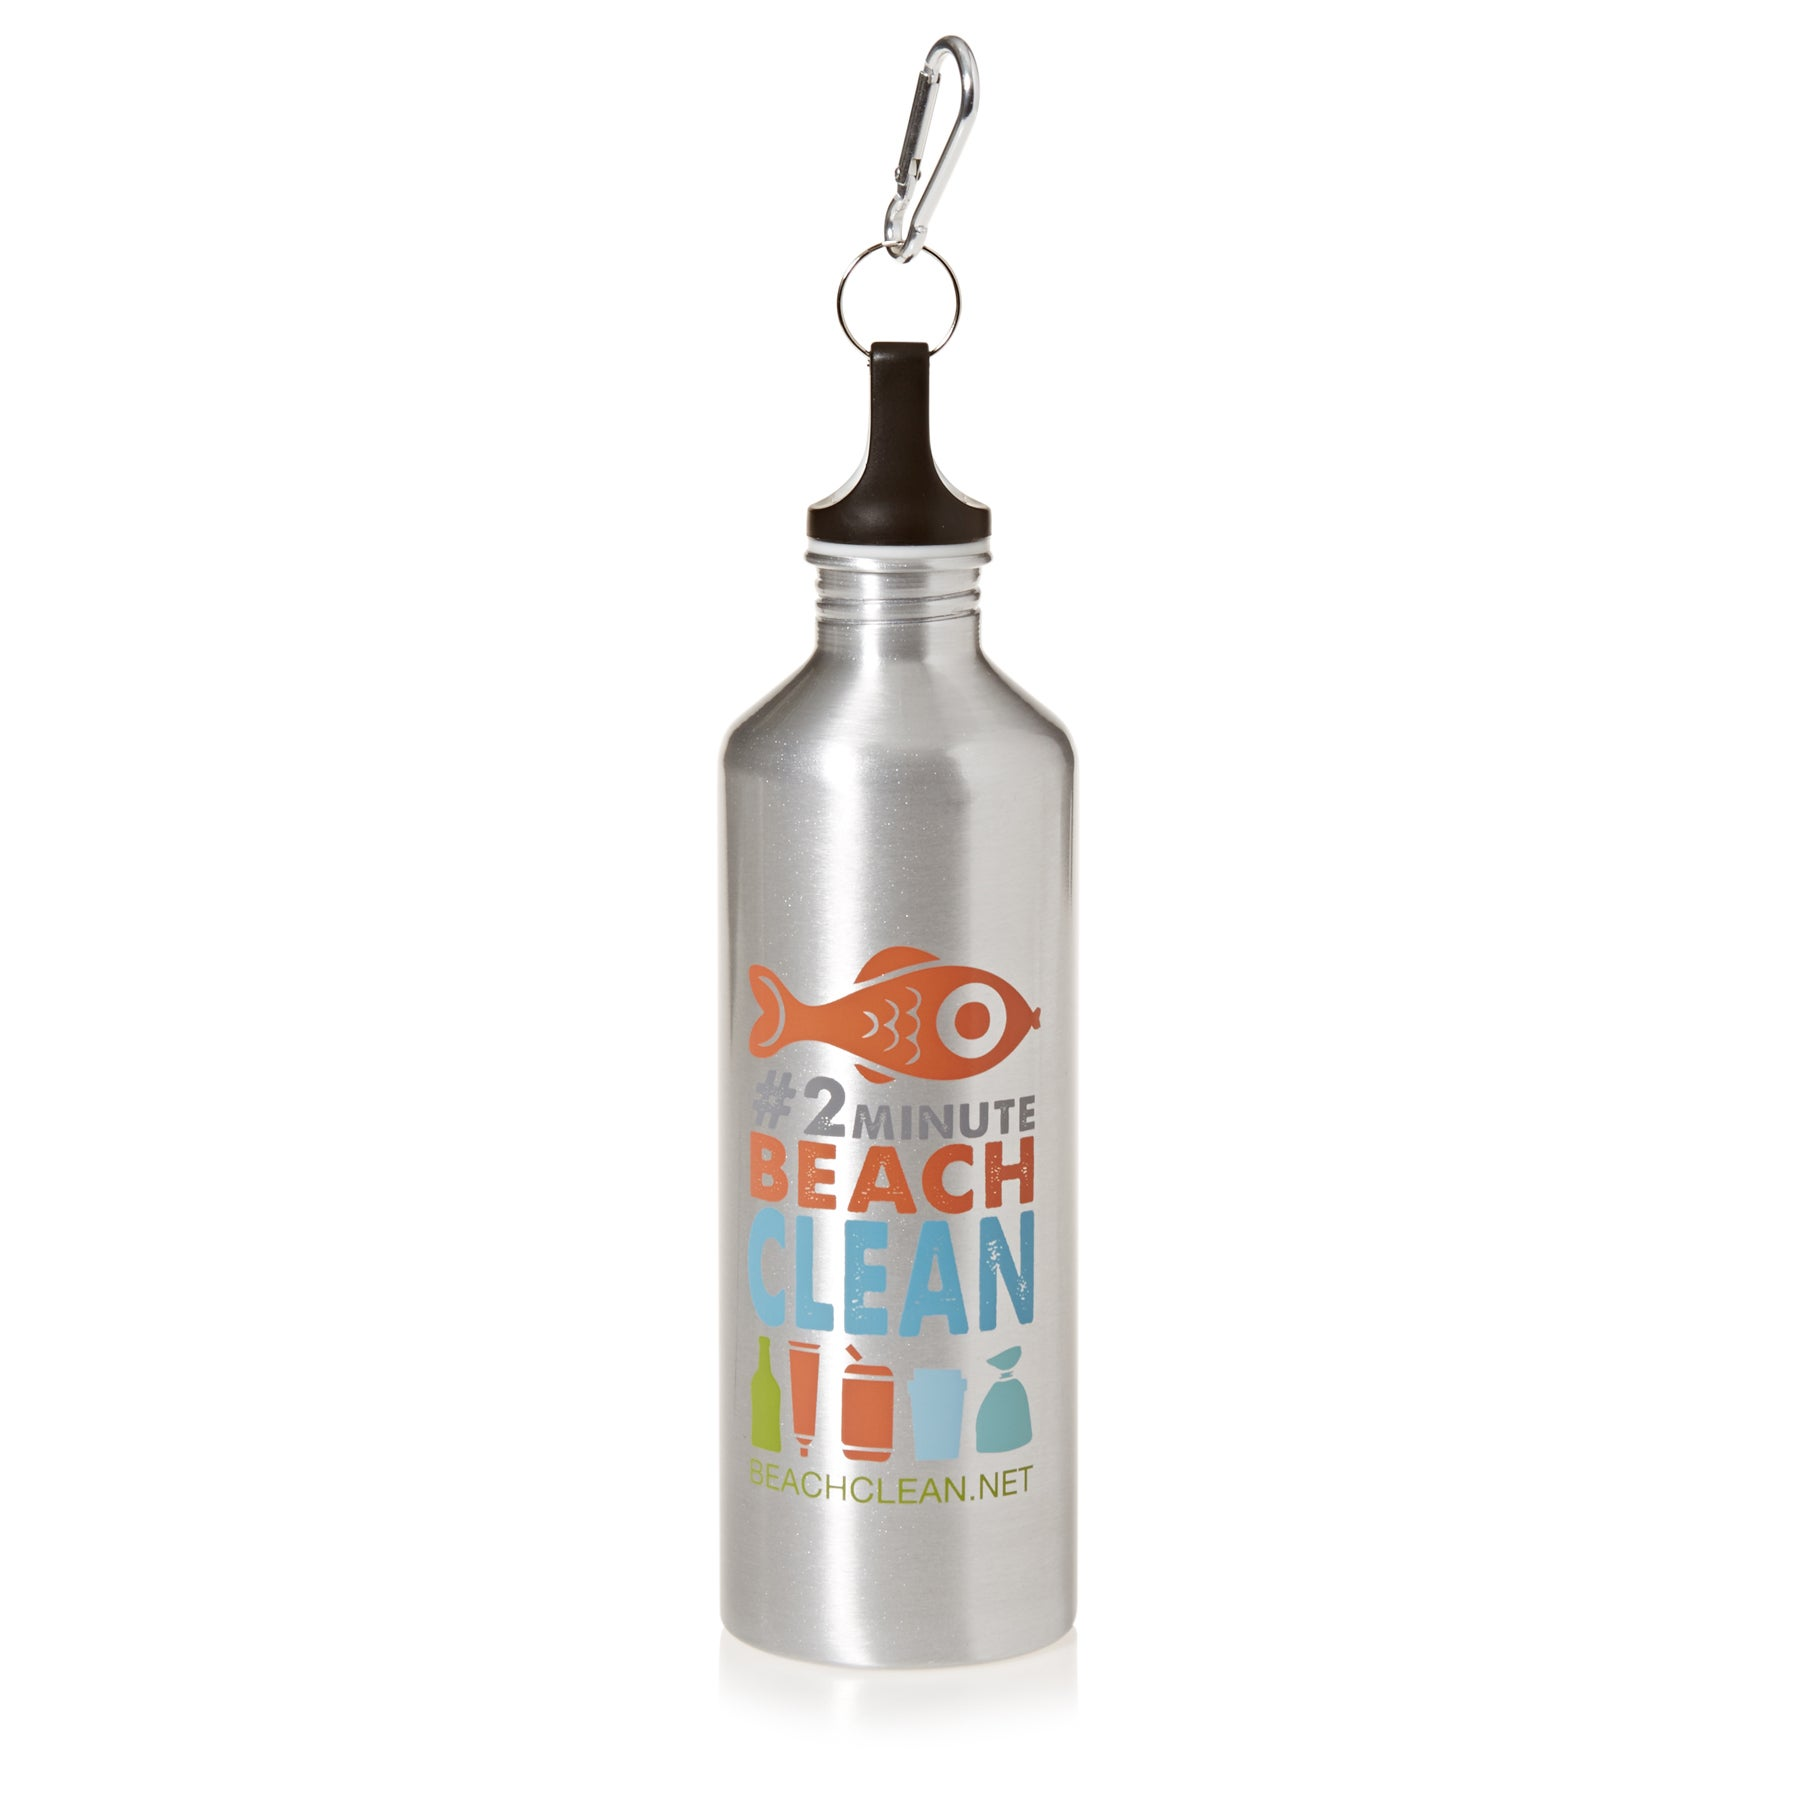 2 Minute Beach Clean Drink Water Bottle